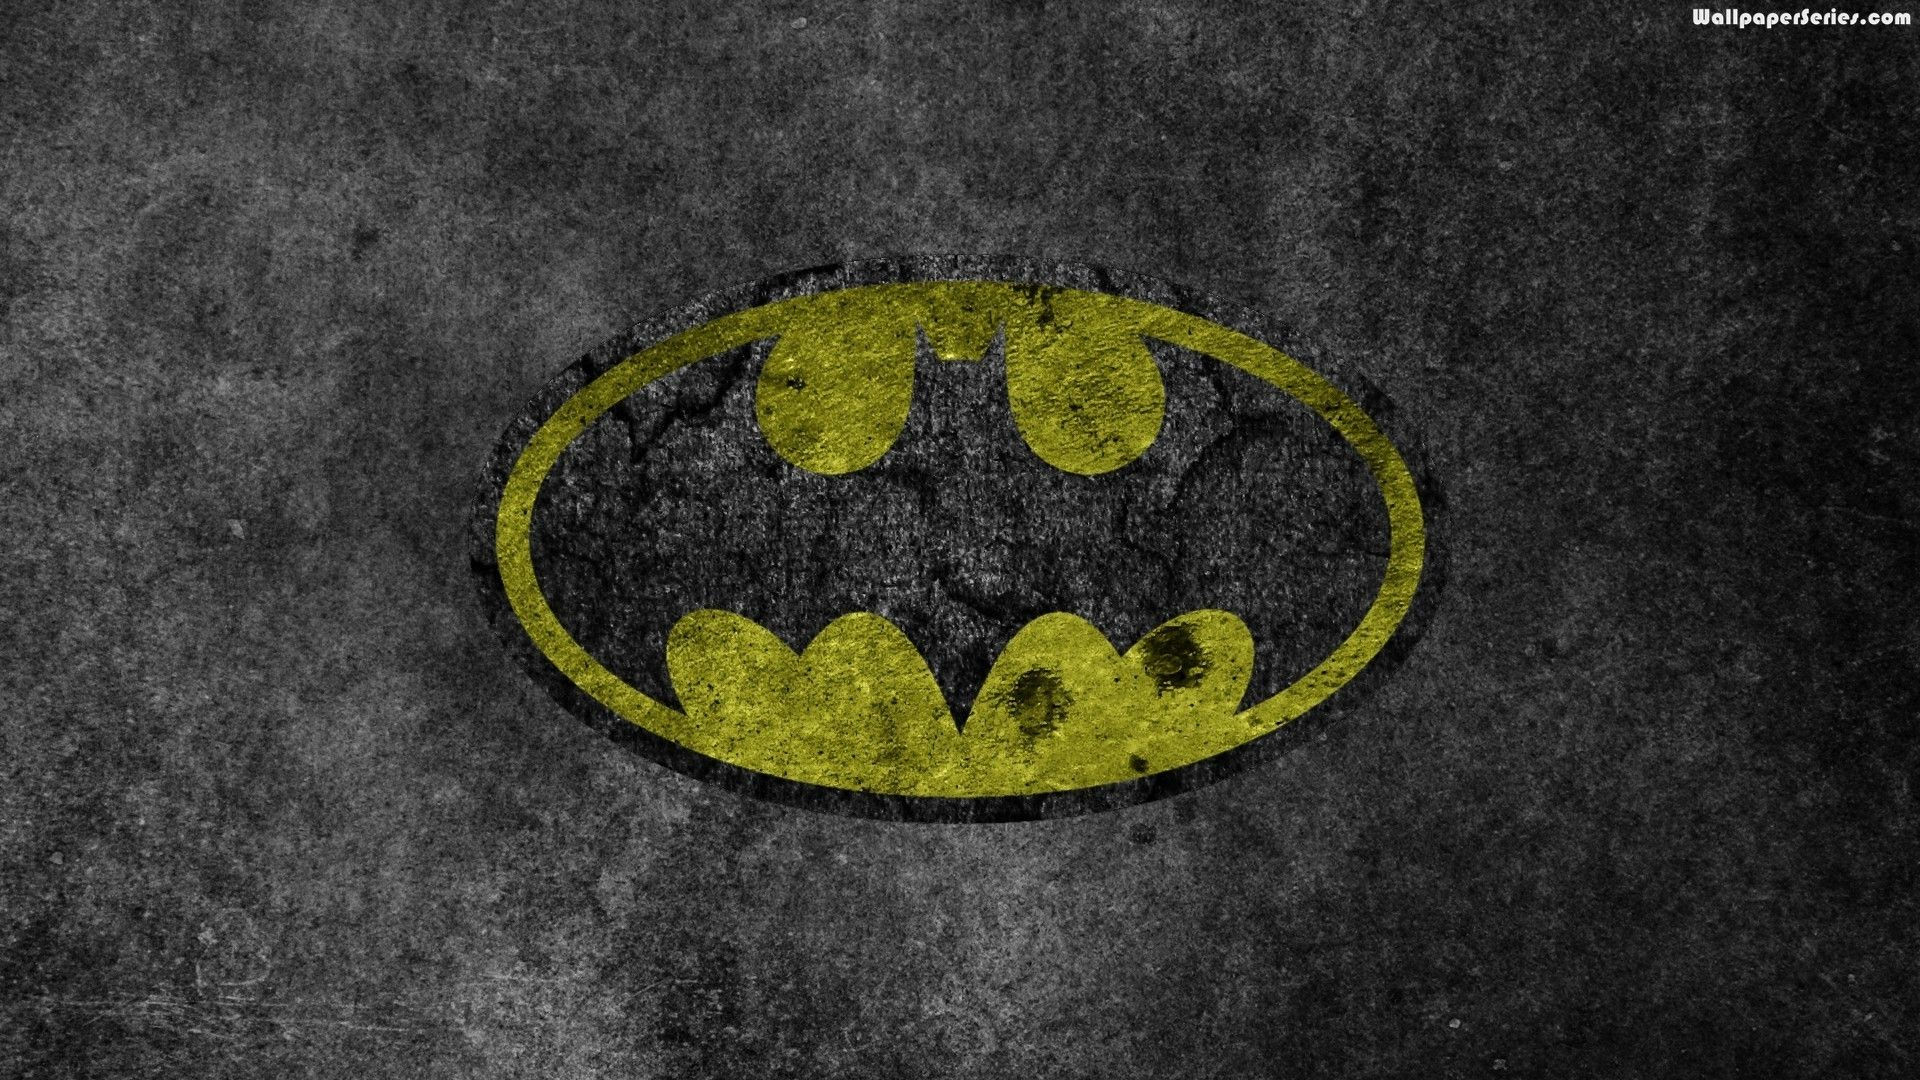 Free Download 50 Batman Logo Wallpapers For Download Hd